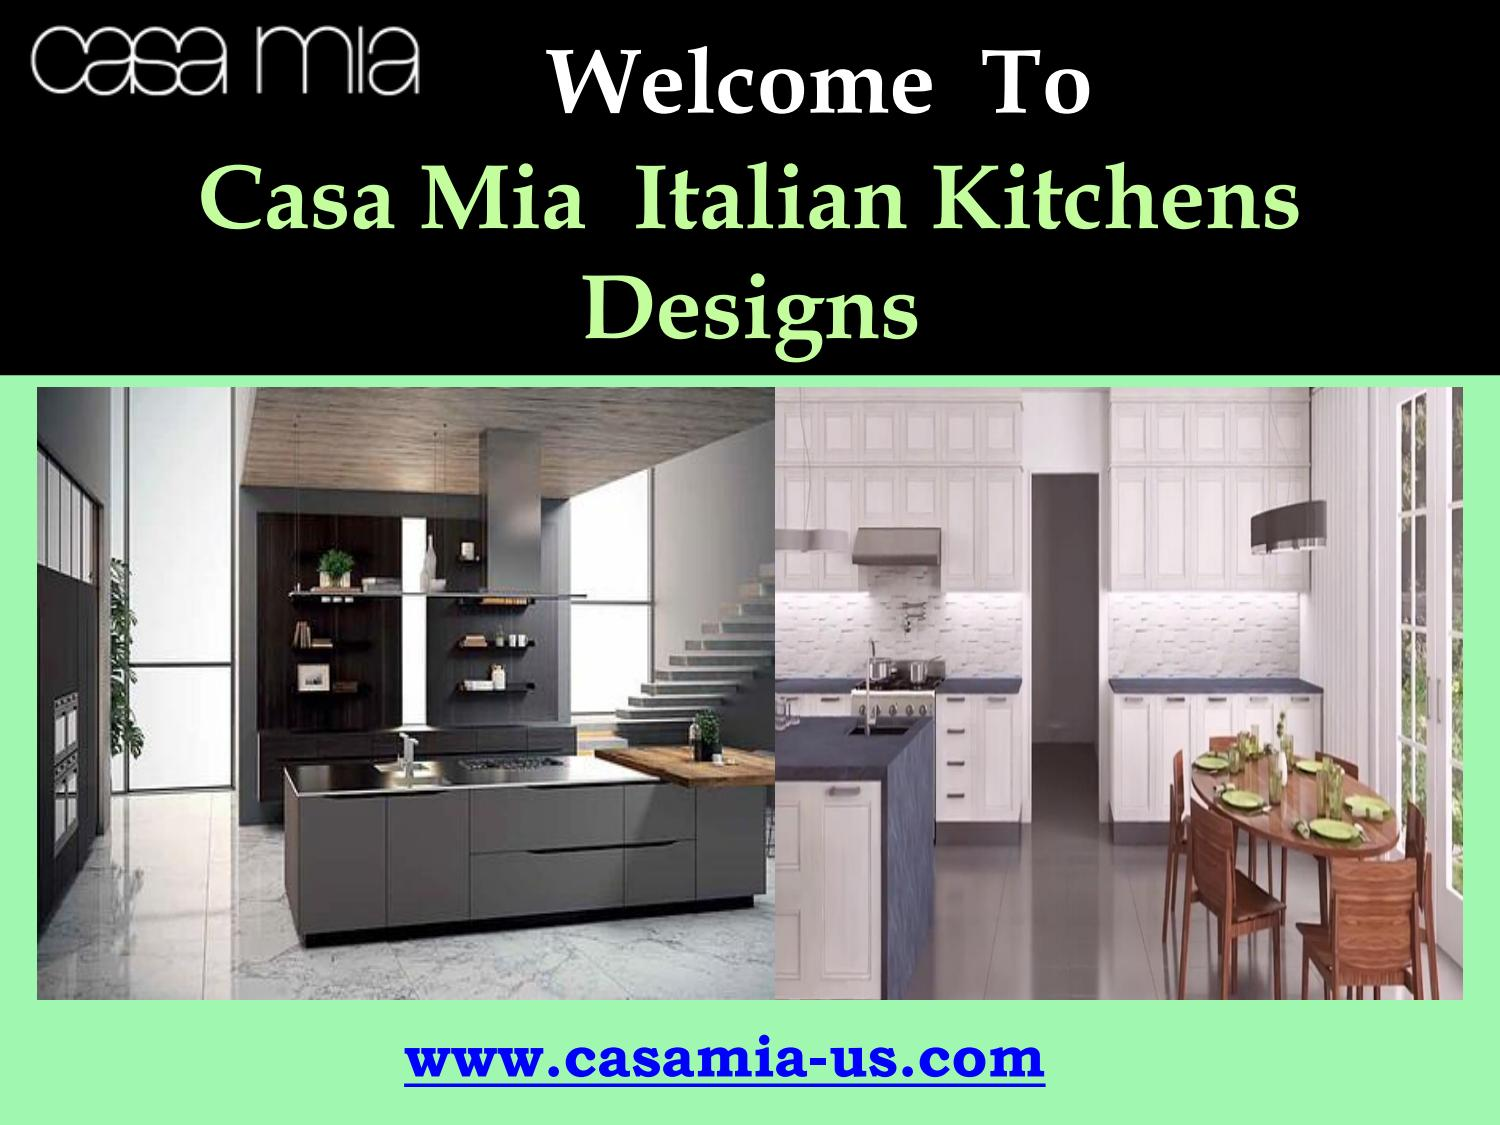 Miton italian kitchens by Casa Mia USA, Inc - issuu